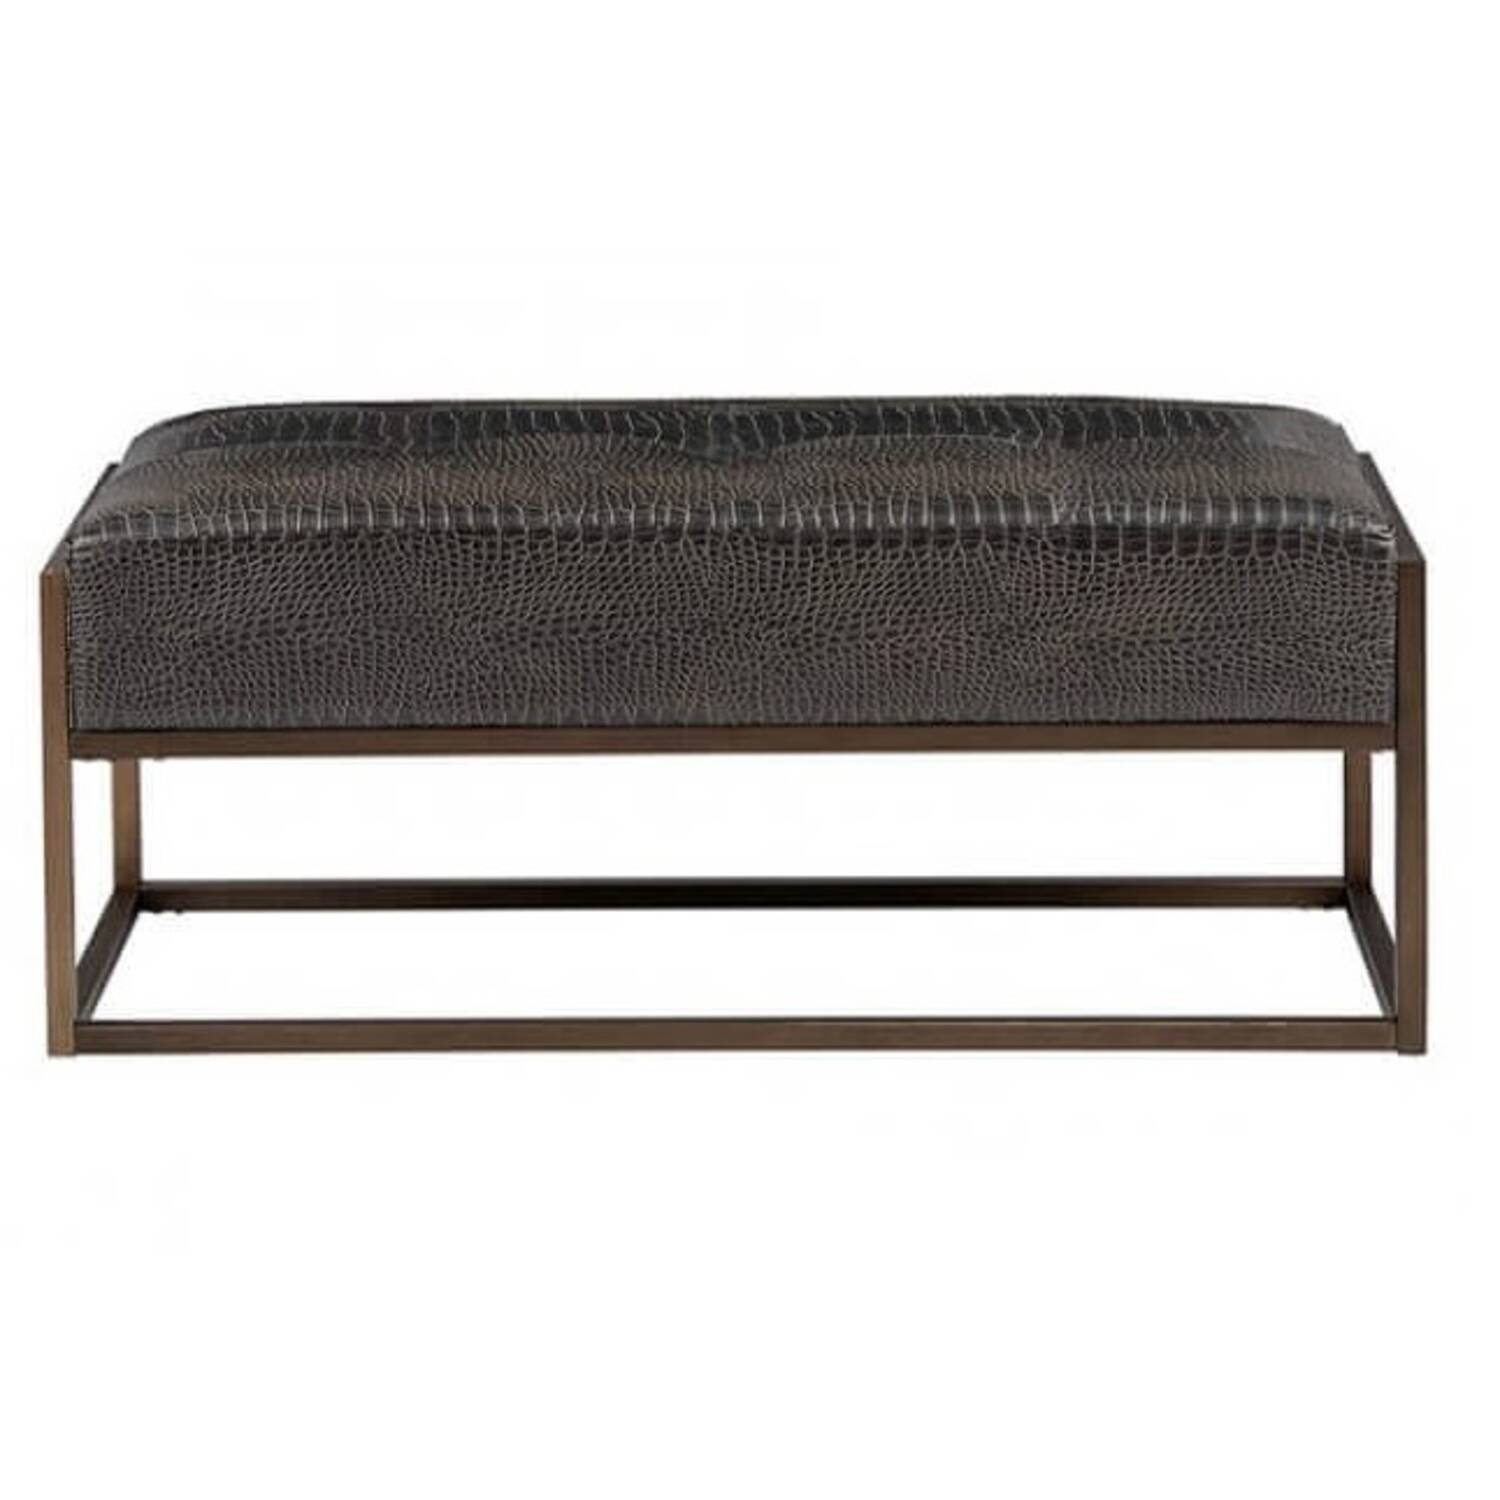 Мягкая скамья Brown Bench